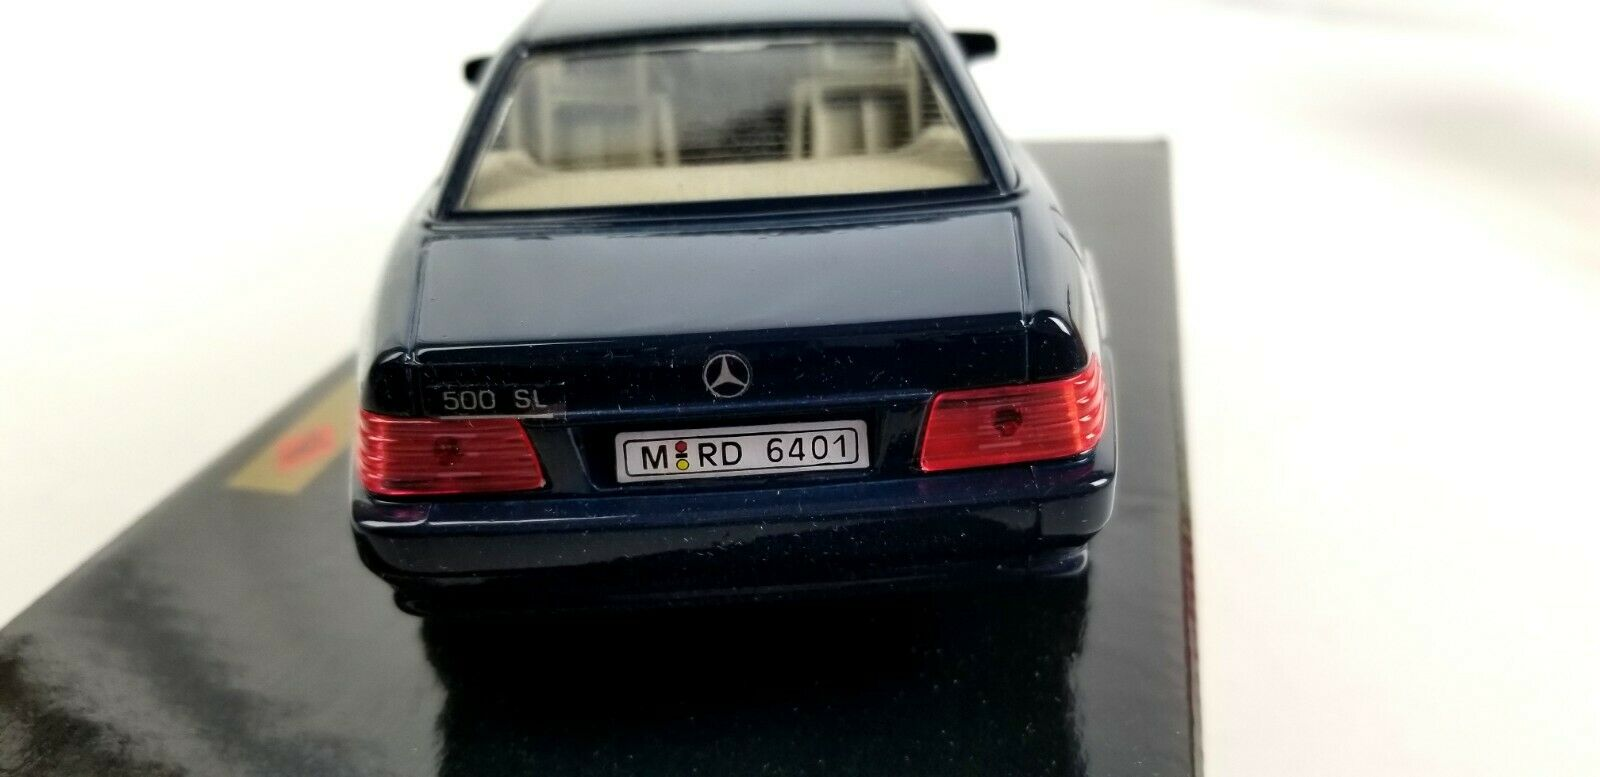 New New New Guiloy Mercedes Benz 500SL Coupe bluee 1 24 Scale Diecast Model Car Replica 14e0c6